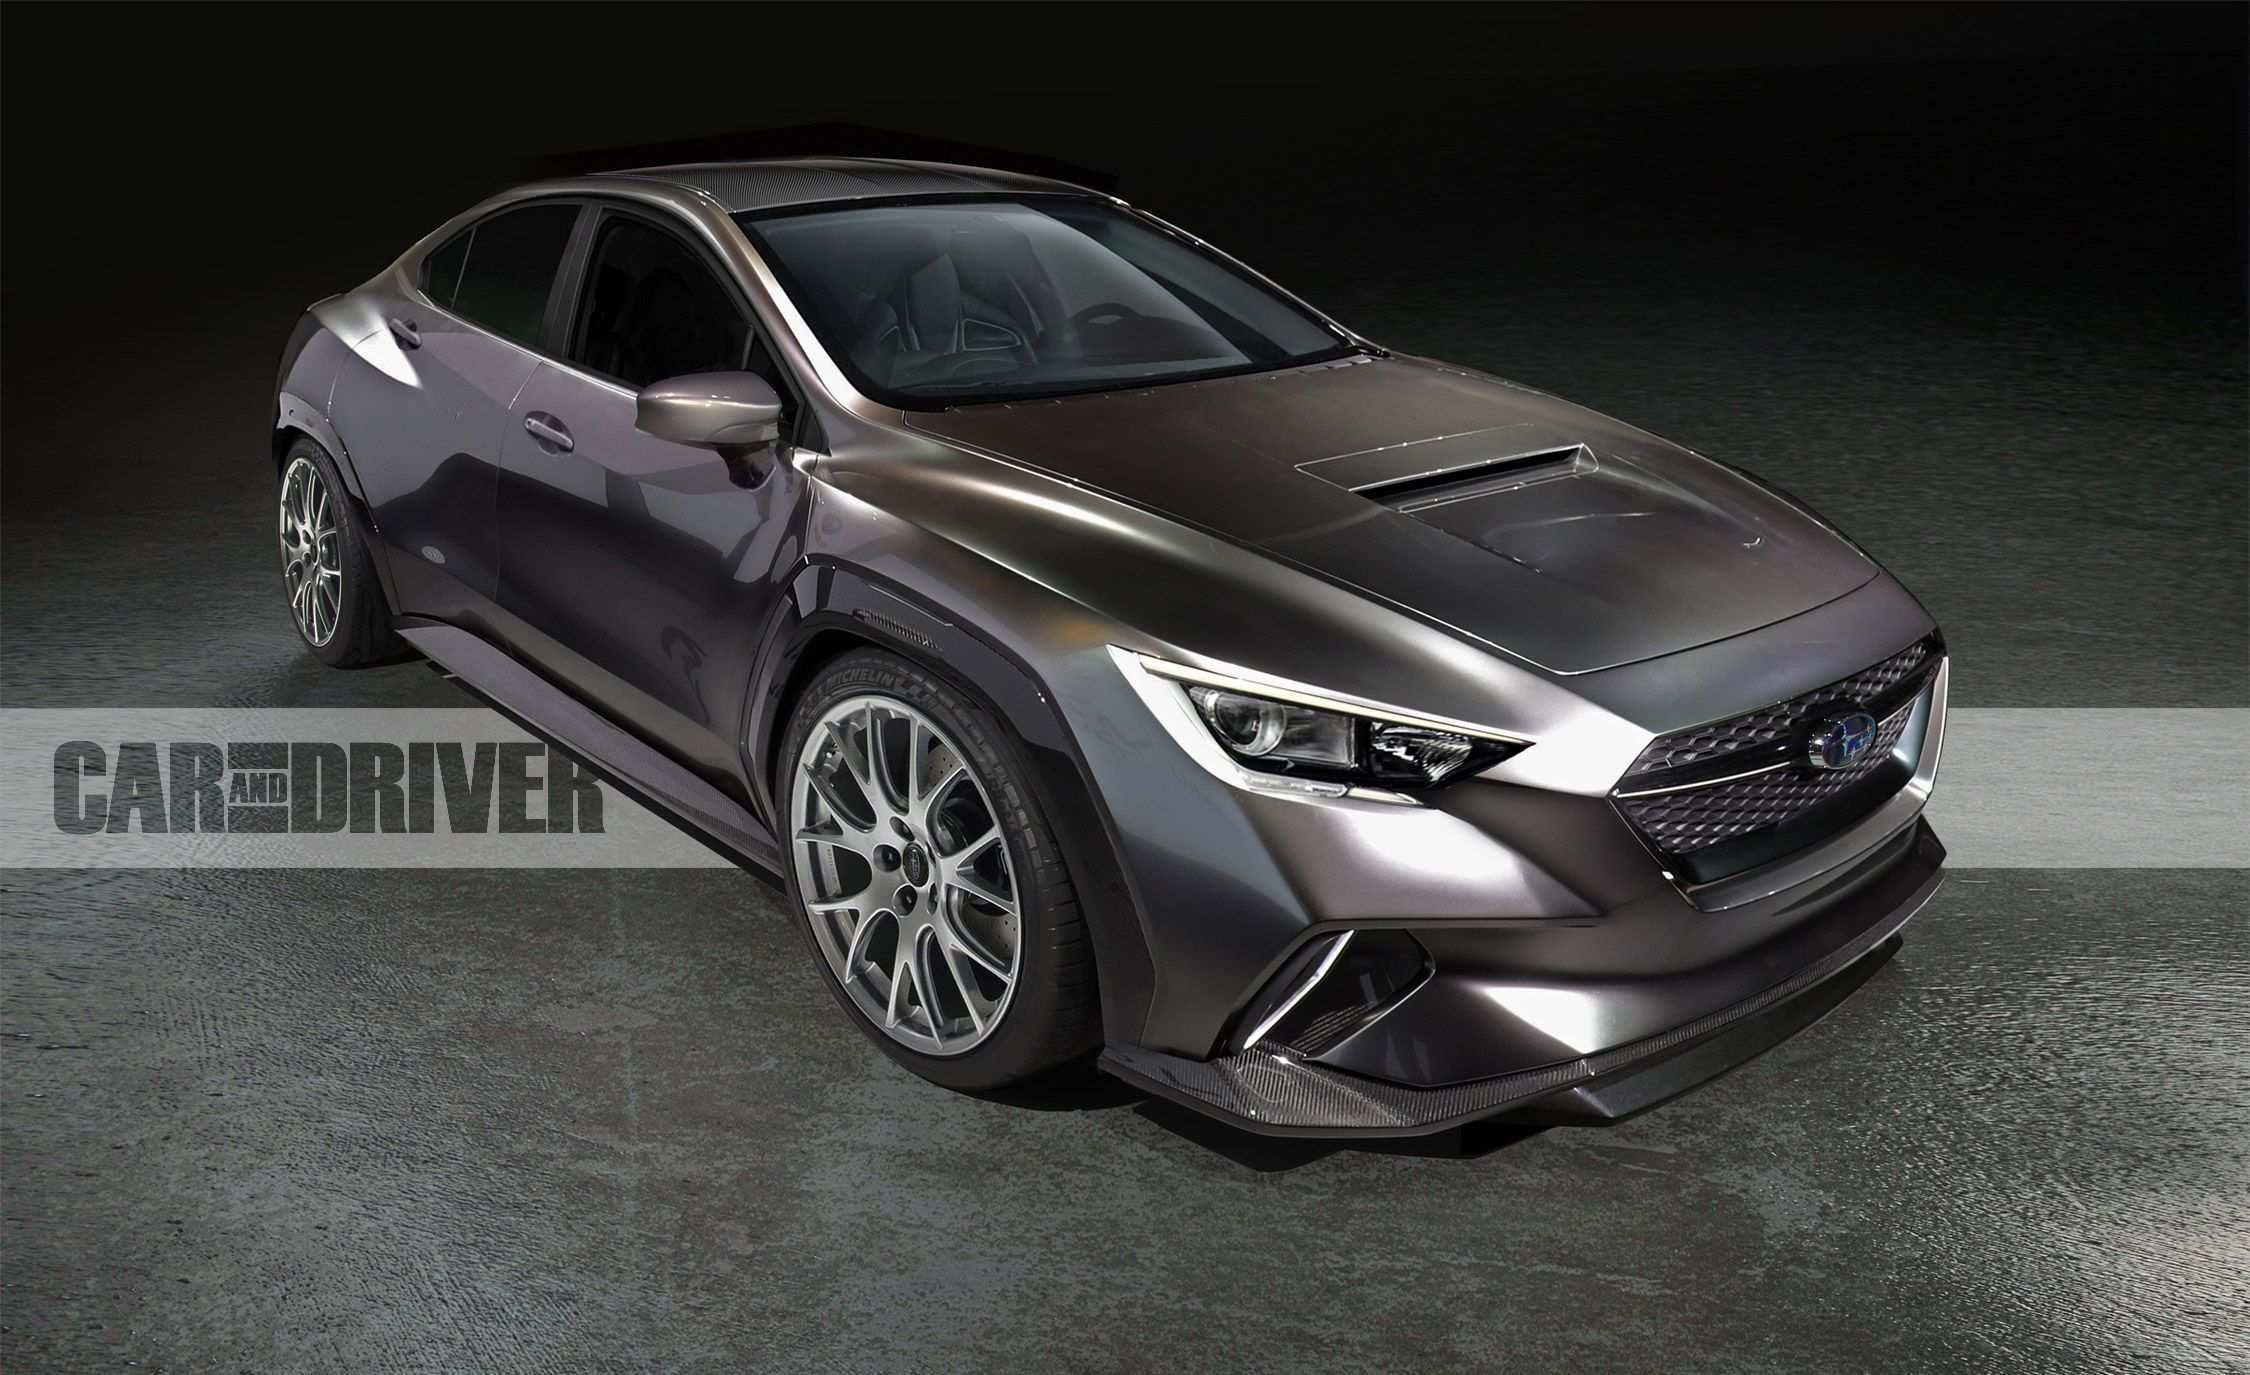 57 Gallery of Subaru Impreza Wrx Sti 2020 Overview for Subaru Impreza Wrx Sti 2020